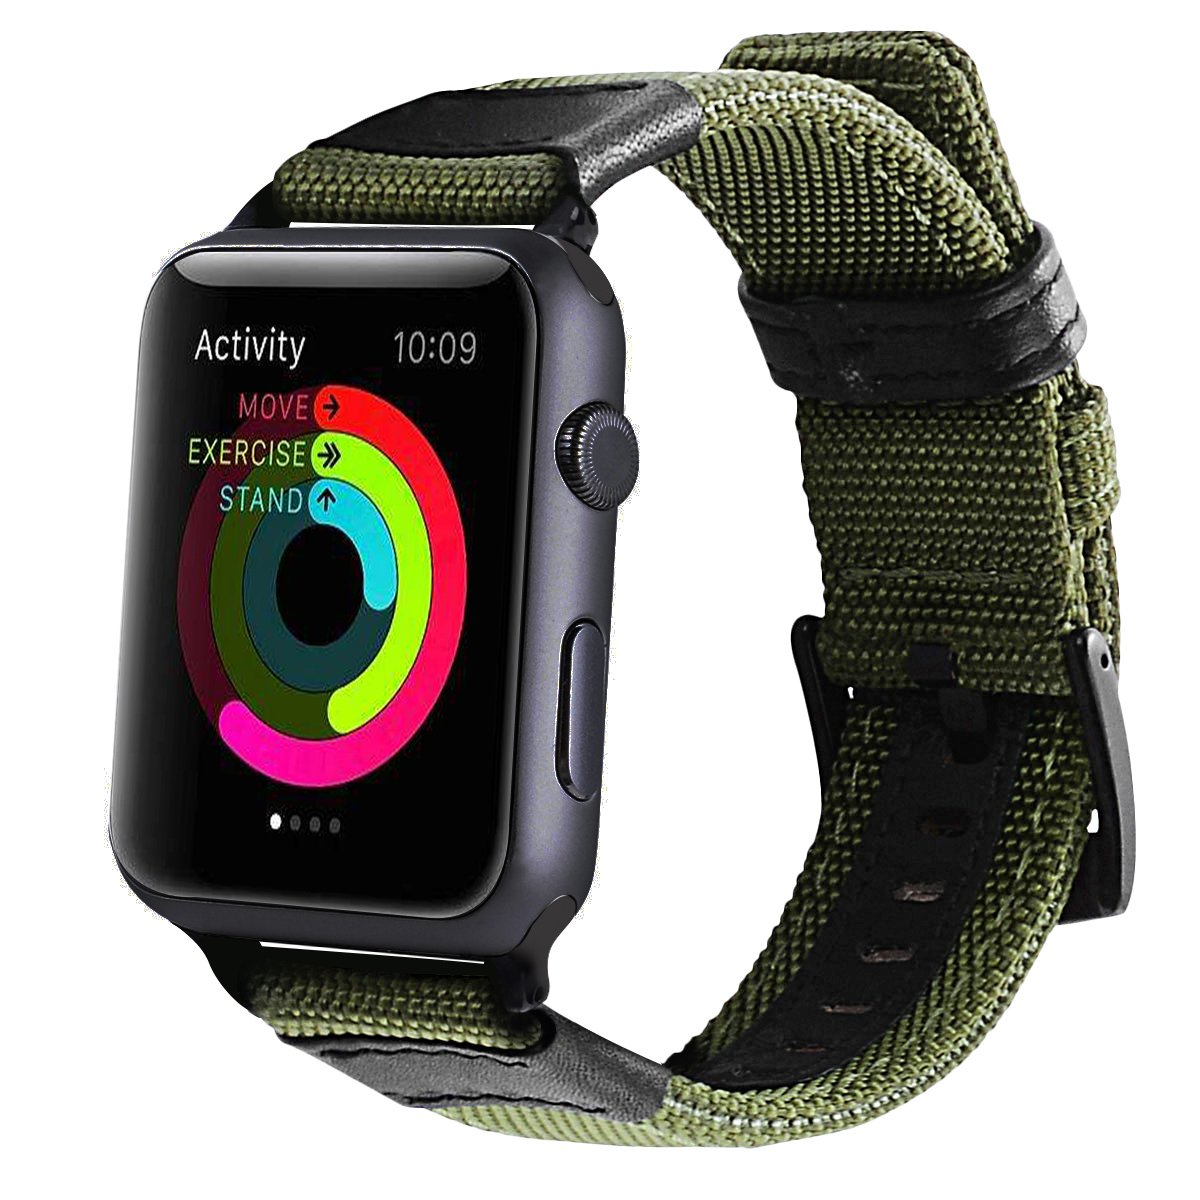 best service a21c4 aab1c Maxjoy For Apple Watch Band 42mm, Nylon iWatch Strap Replacement ...